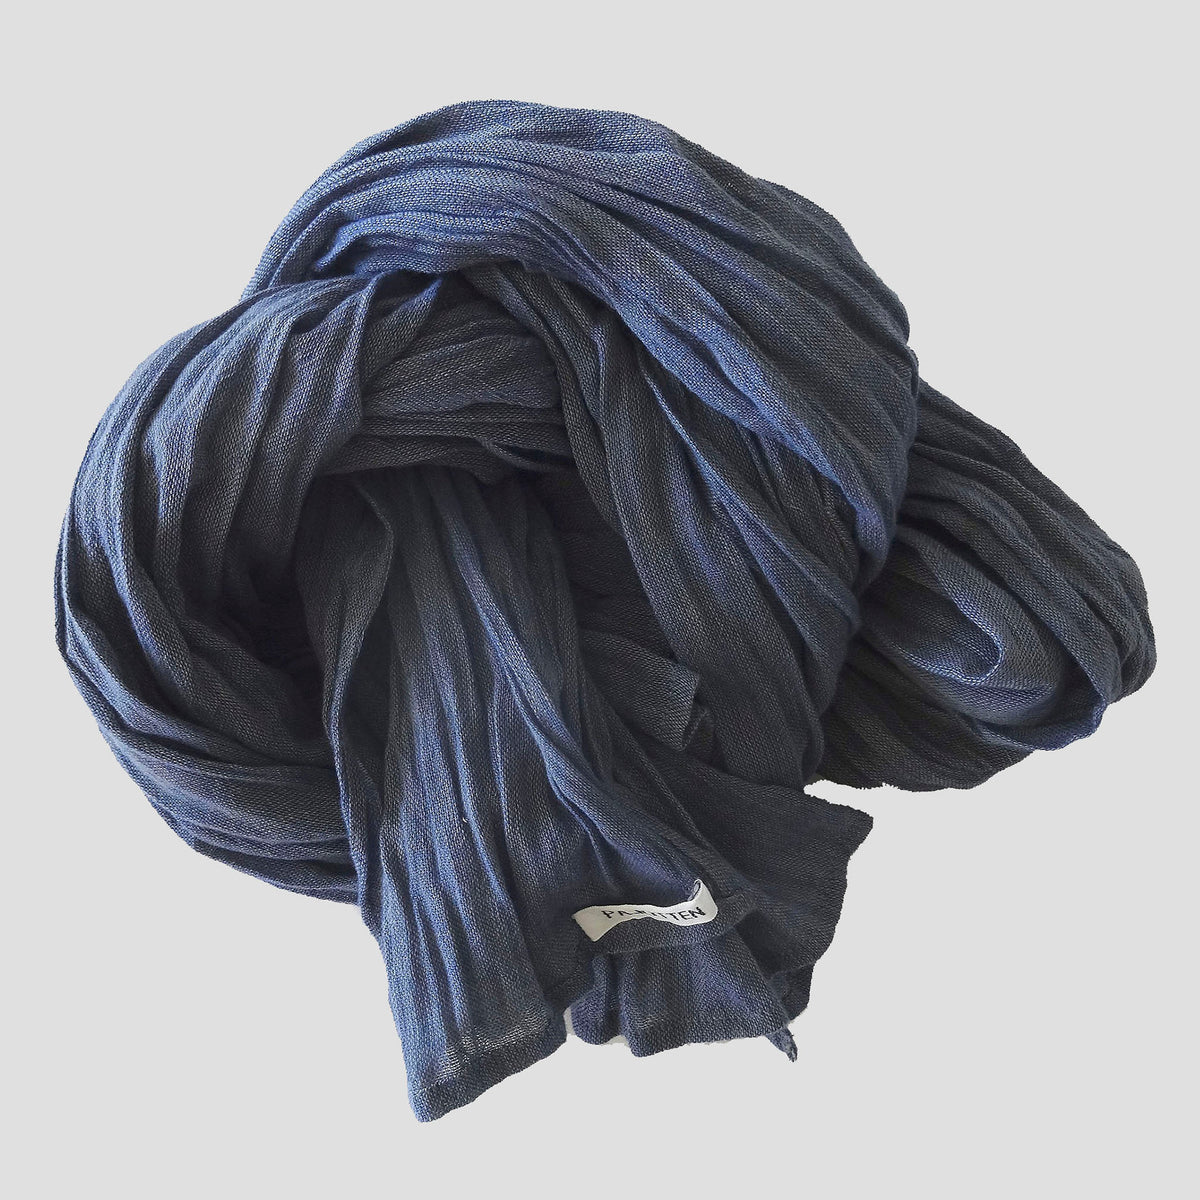 a blue organic cotton scarf rolled up on a table